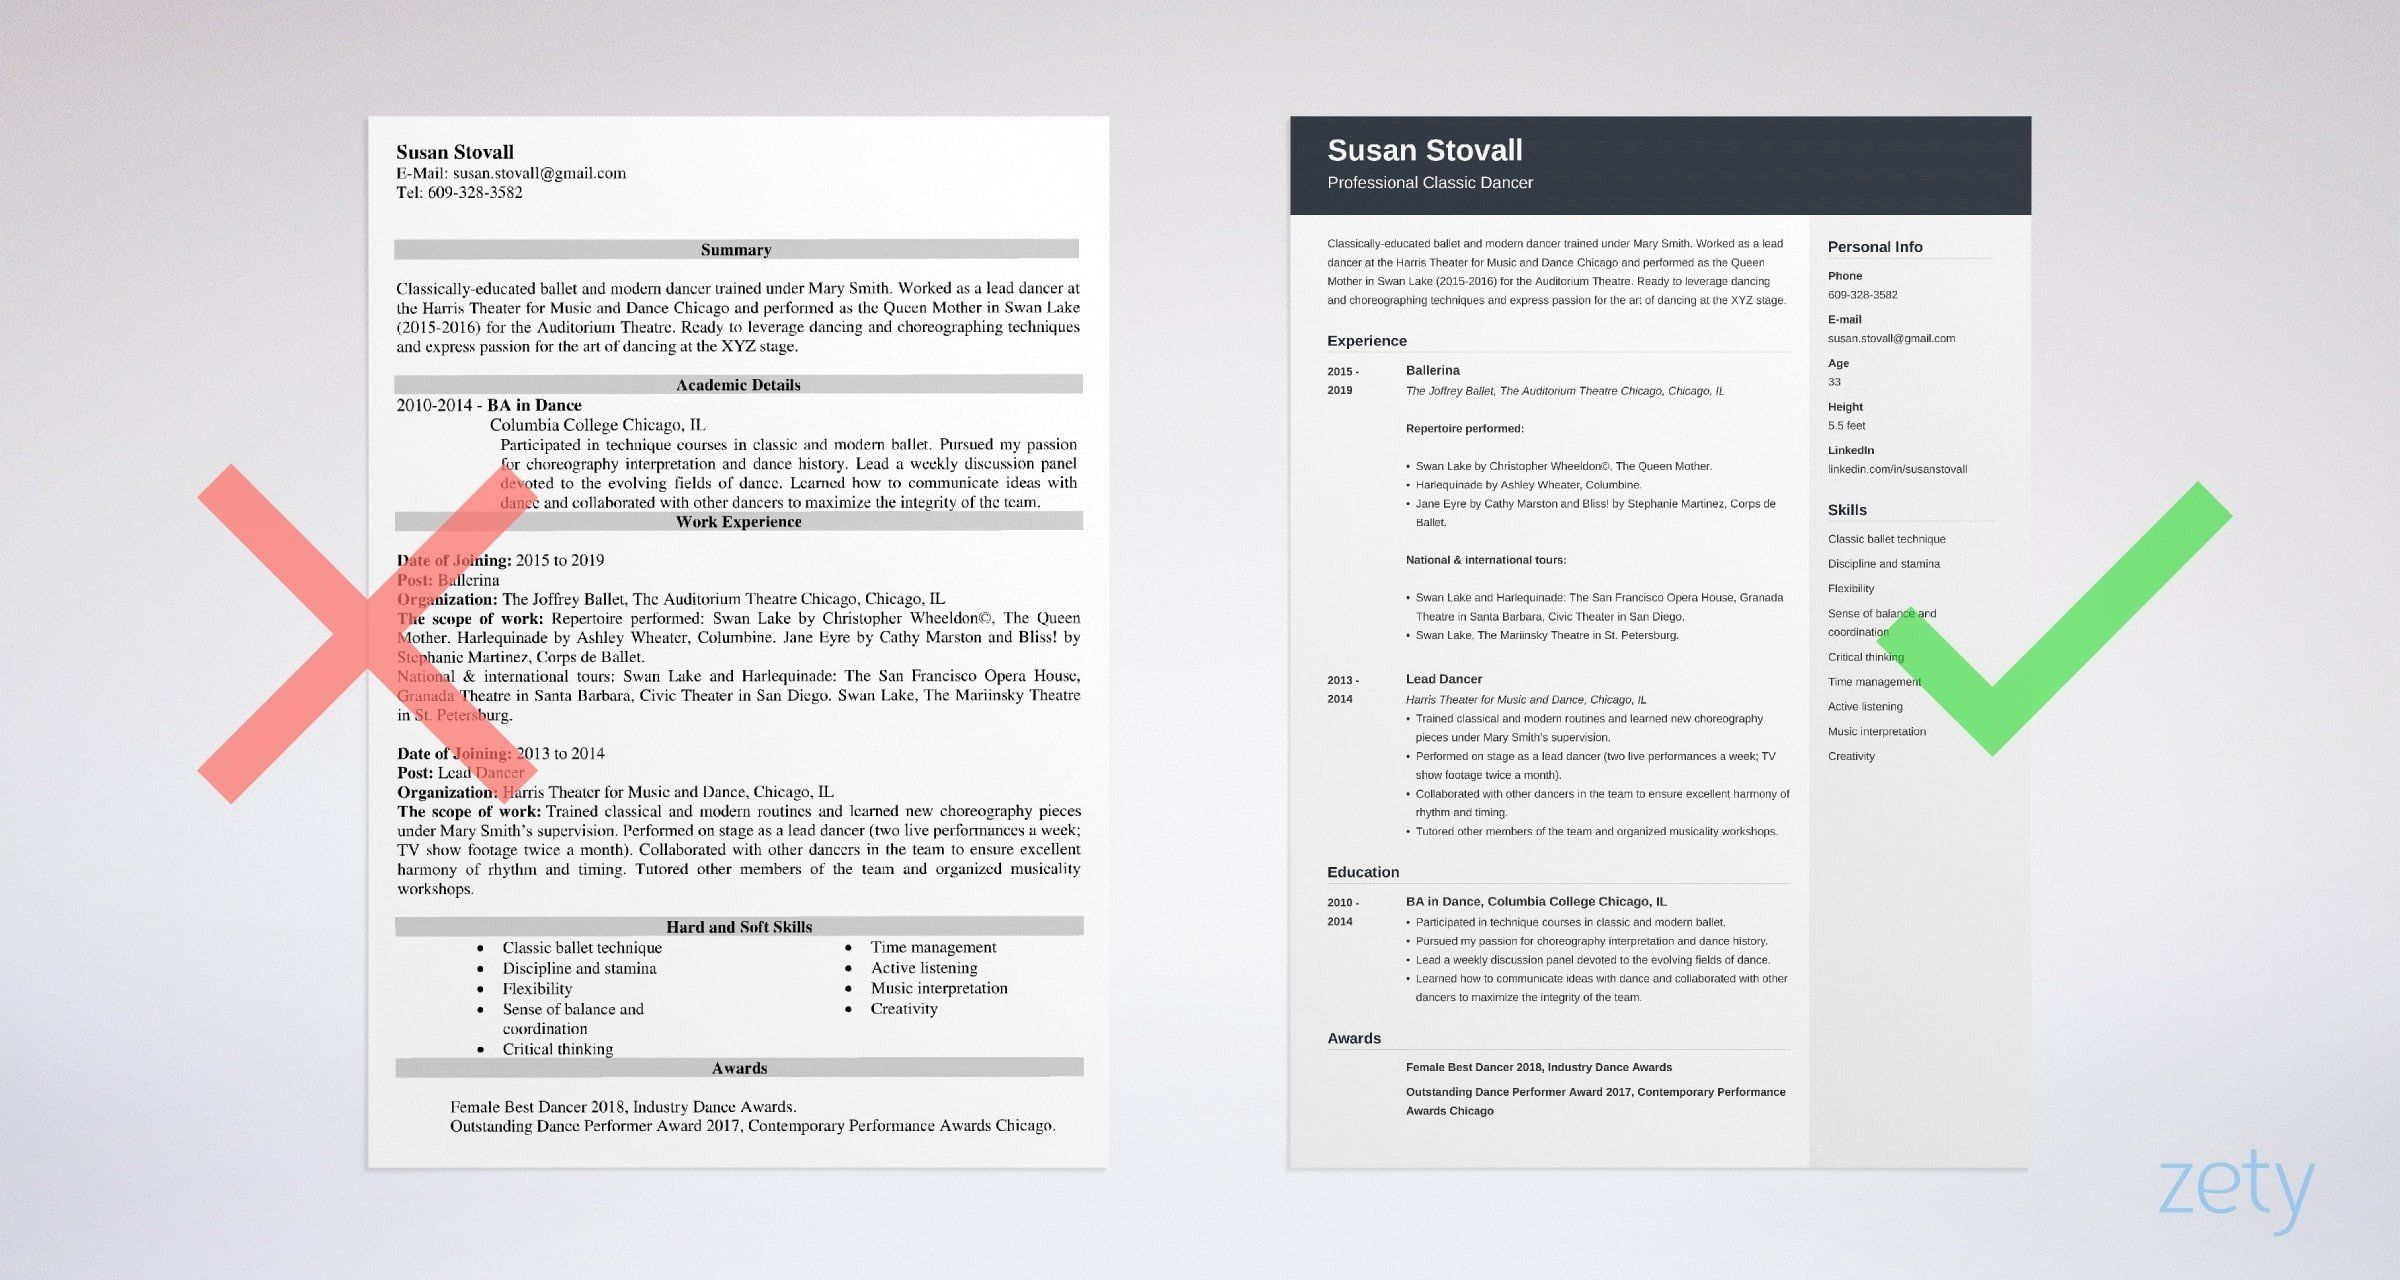 Dance Resume Example For Professionals Or College Grads Dance Resume Resume Profile Examples Resume Examples